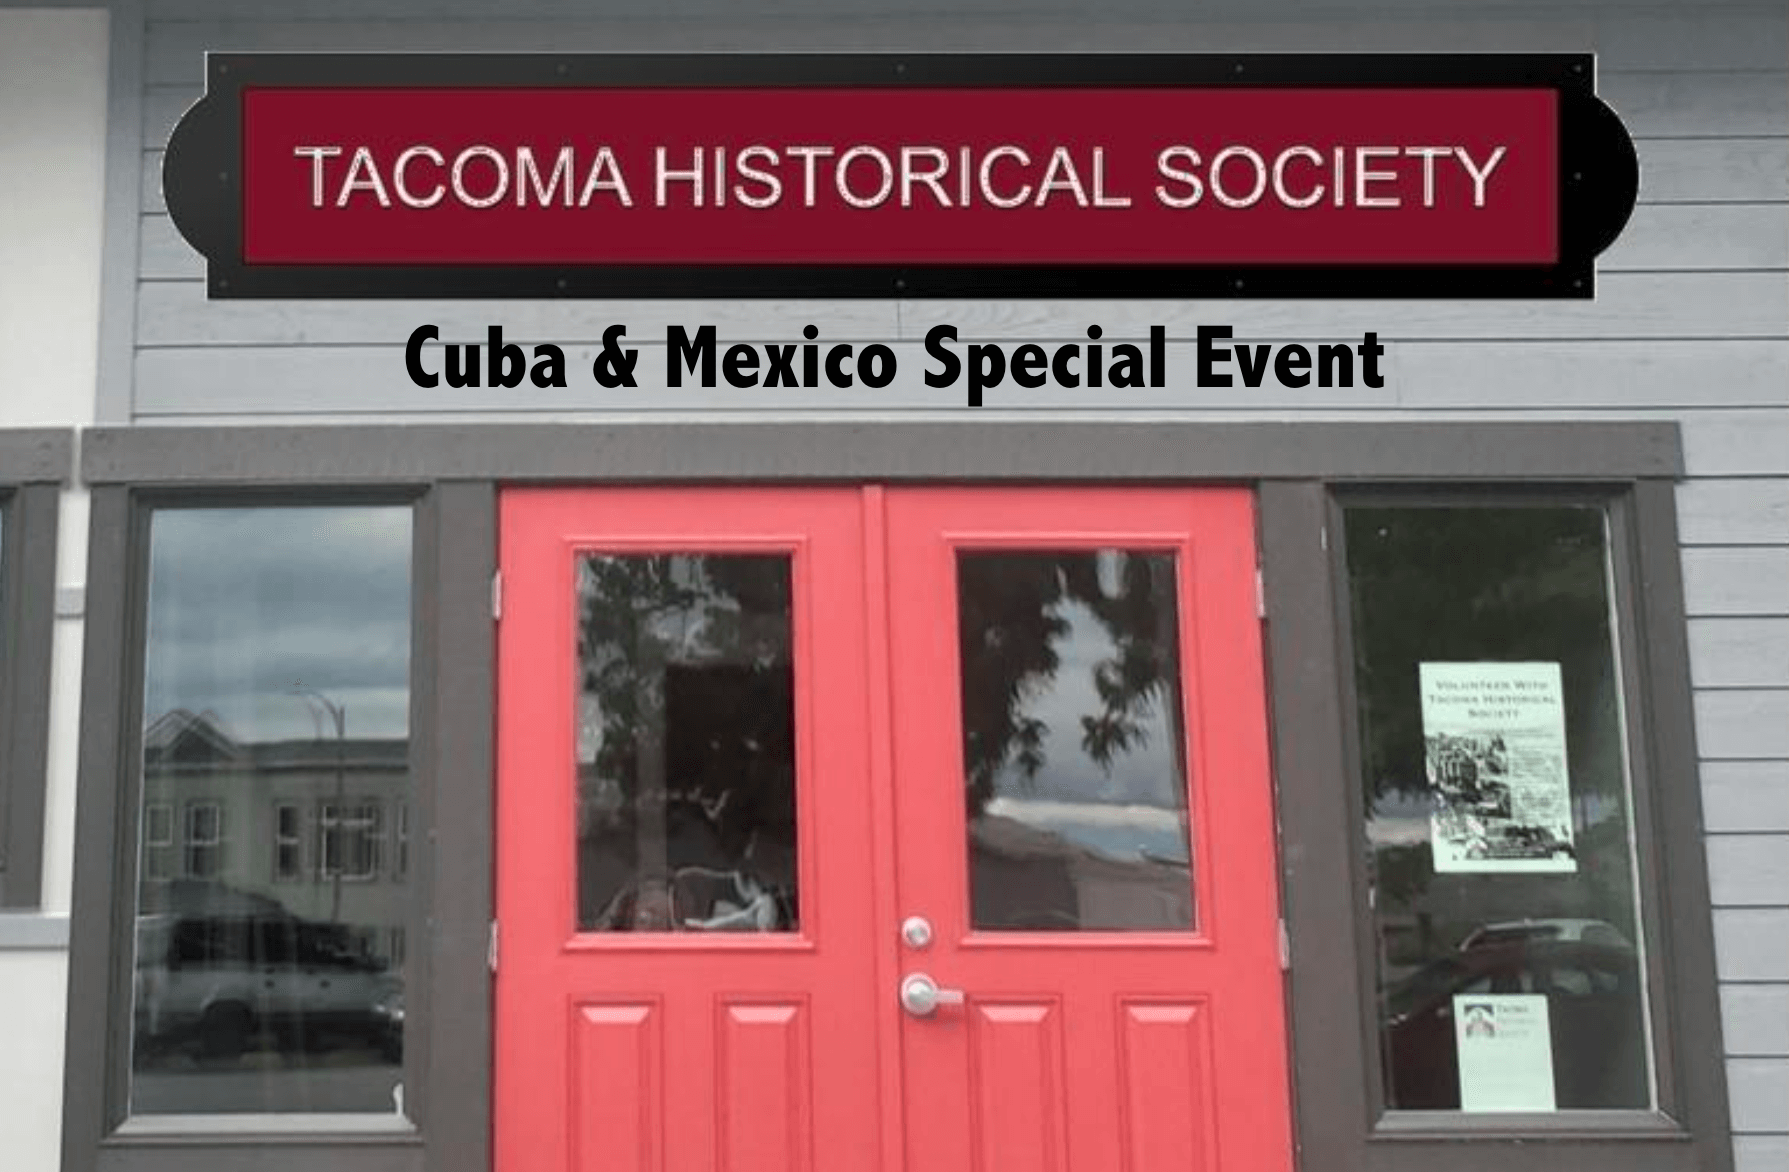 Cuba and Mexico Special Event